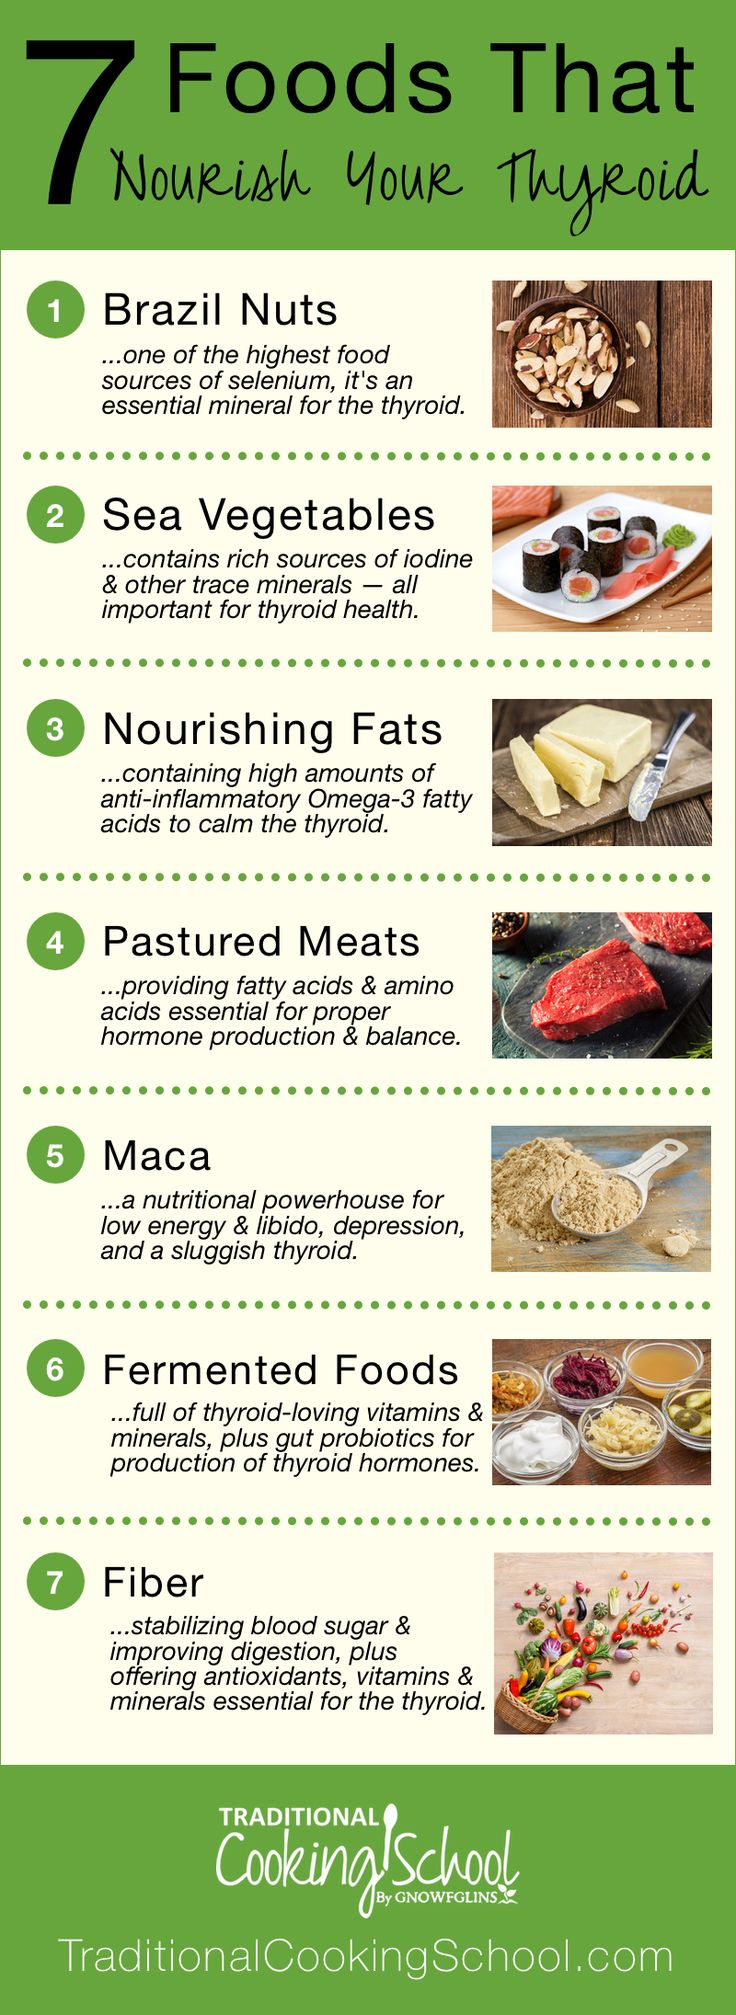 7 Foods That Nourish Your Thyroid   Gaining weight? Feeling depressed or sluggish? Is your hair falling out? Have you experienced strange or irregular heartbeats? Can't sleep? All roads might lead to your thyroid. Thyroid problems can be genetic, and though you can't control your genes, you can control your diet and lifestyle. Nourish your thyroid with these 7 foods!   TraditionalCookingSchool.com